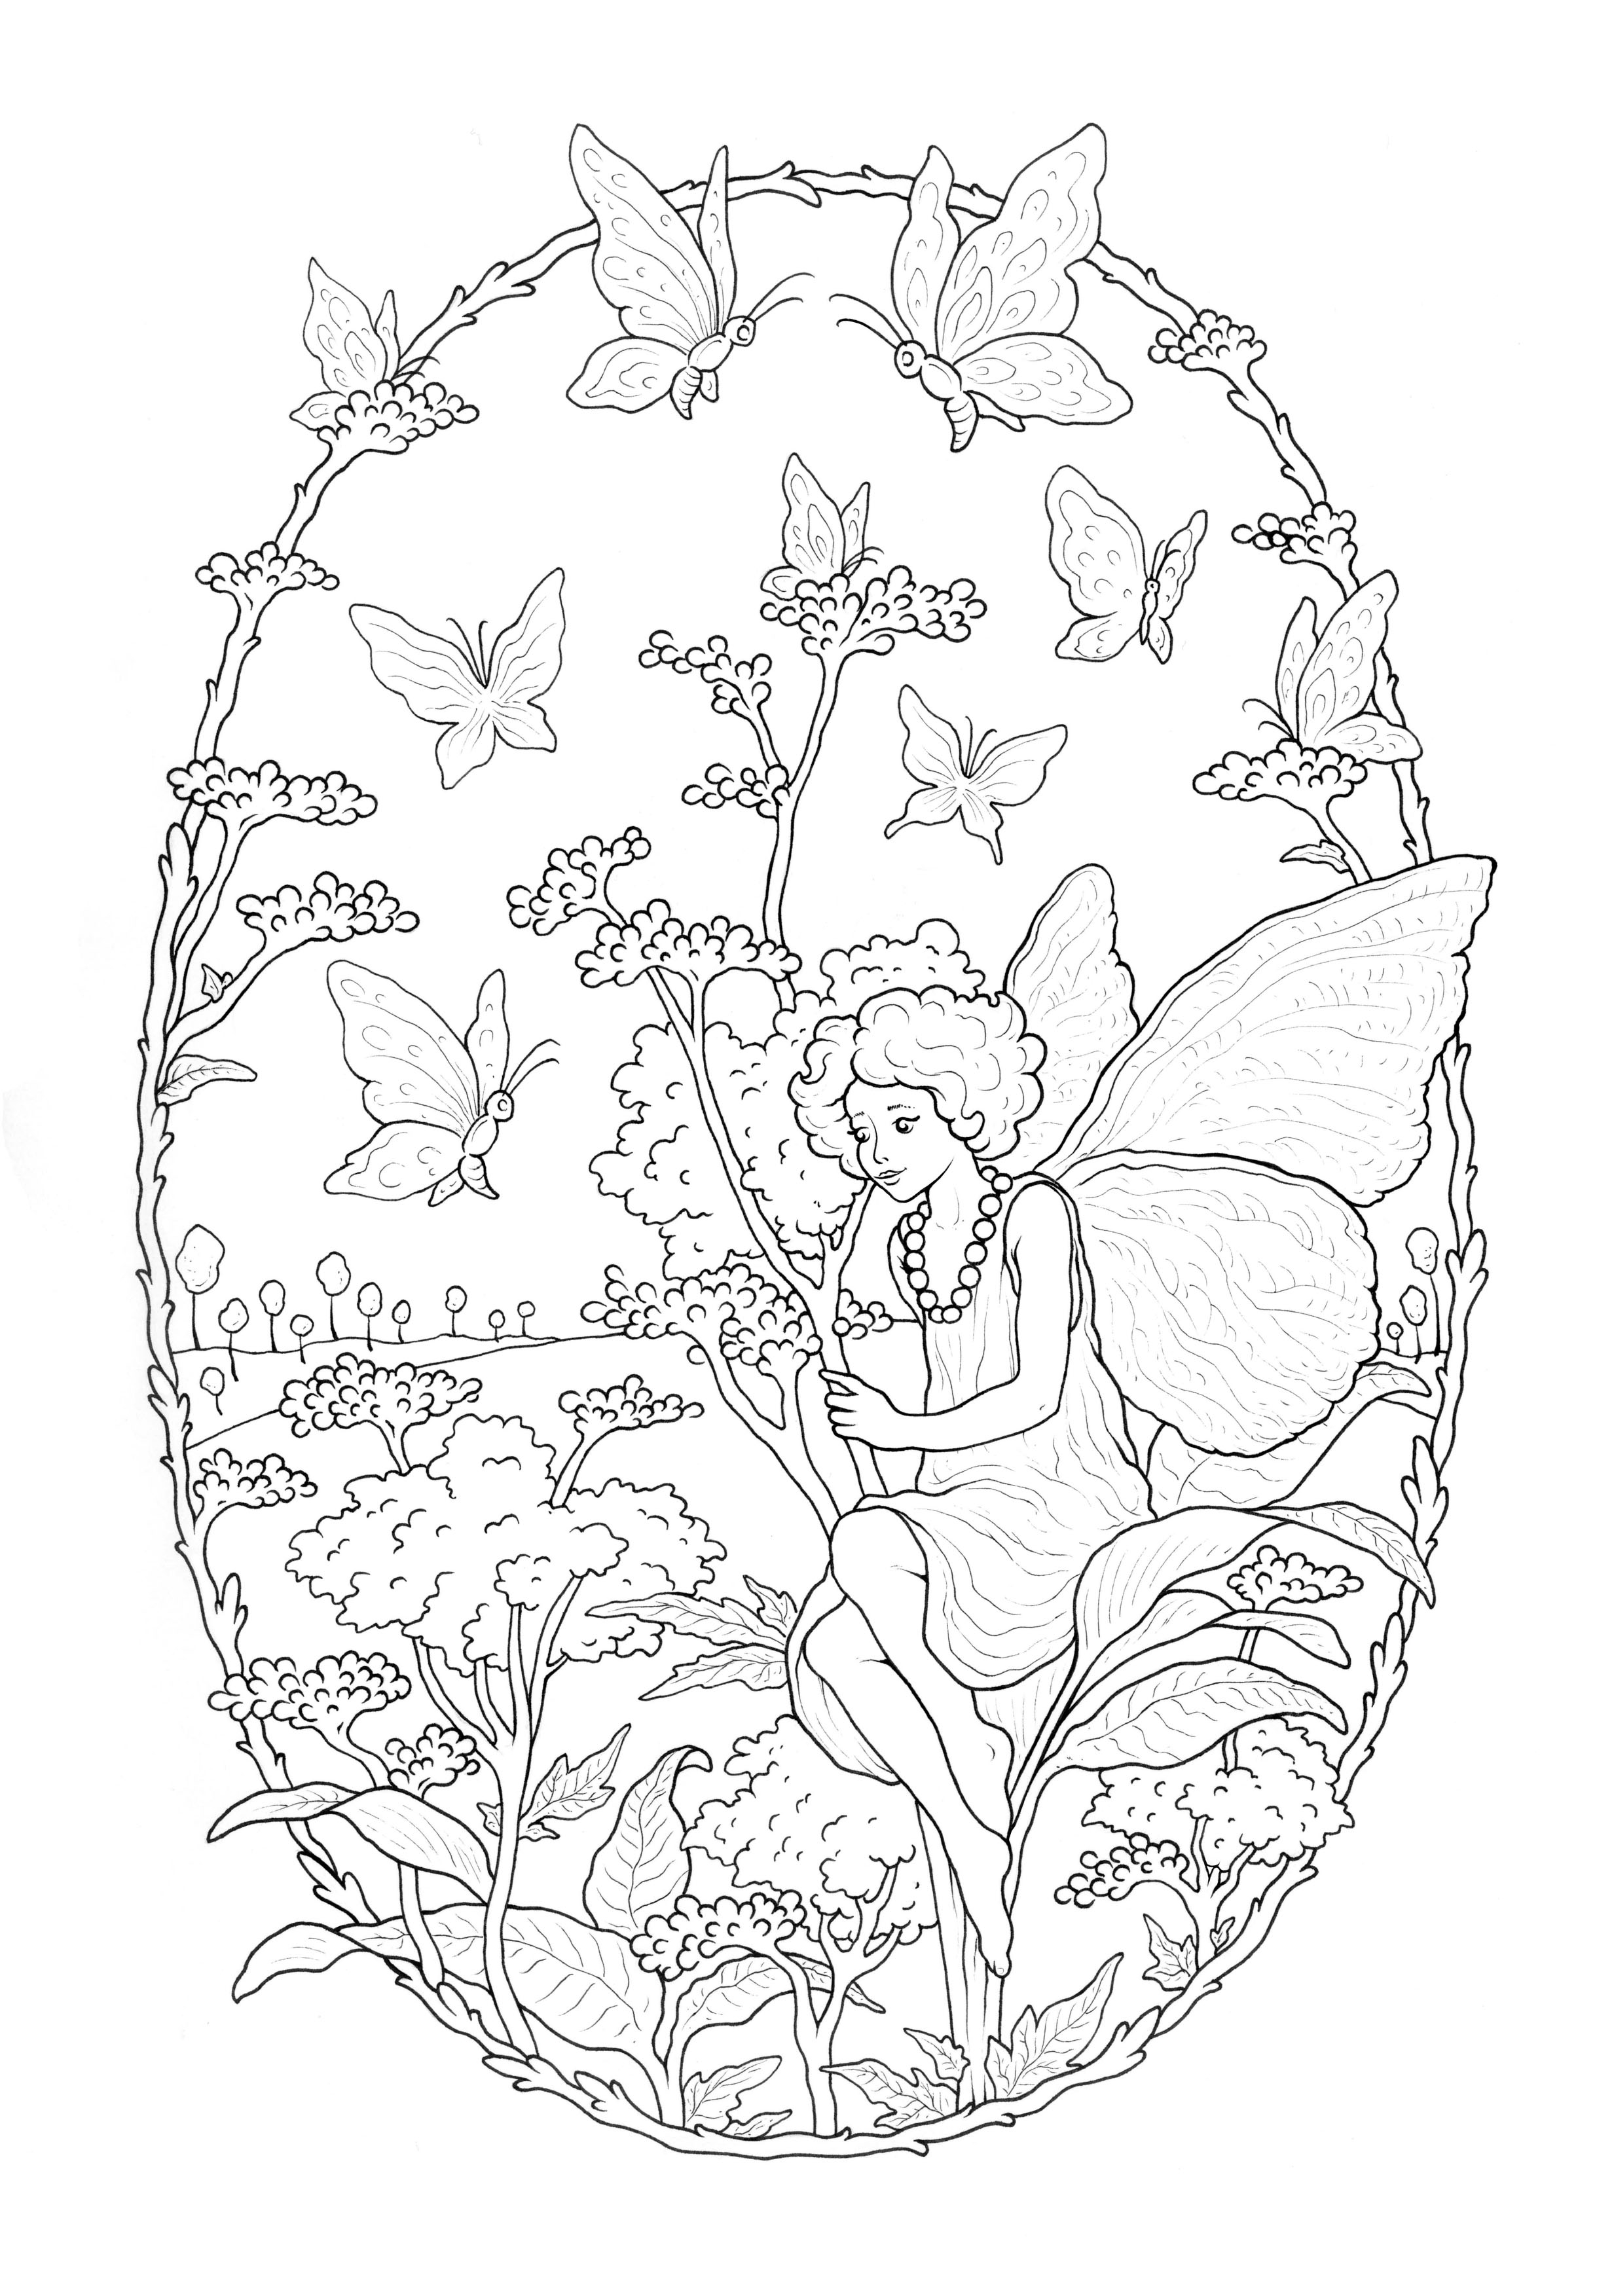 Fairy Coloring Page Fairy Free To Color For Children Fairy Kids Coloring Pages